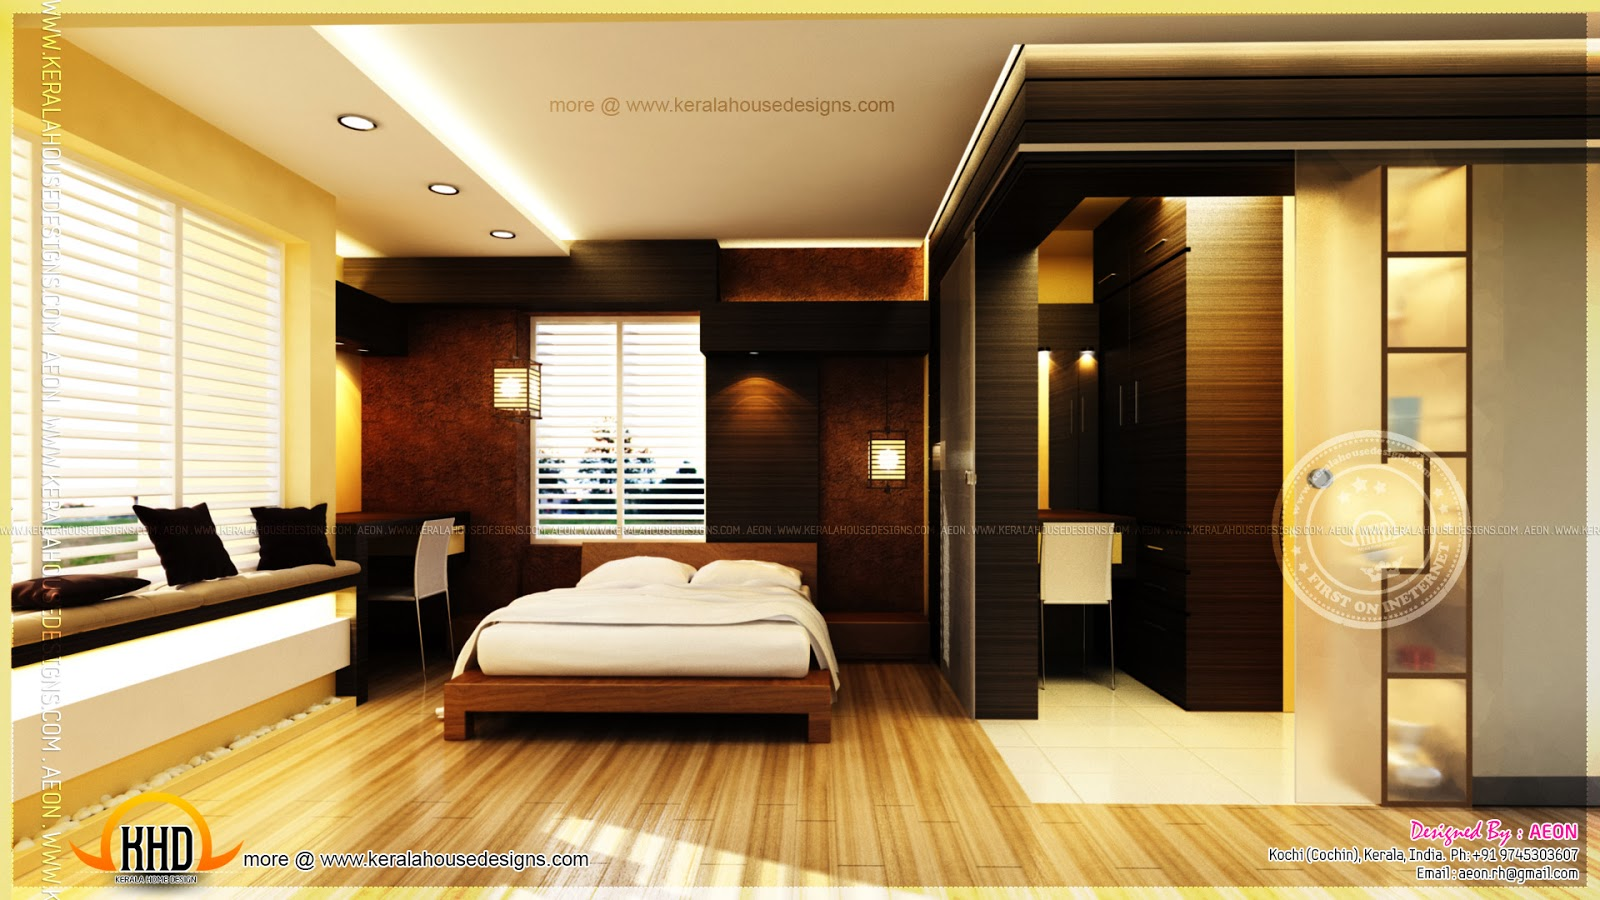 Apartment interior designs by aeon cochin kerala home design and floor plans Master bedroom size in india